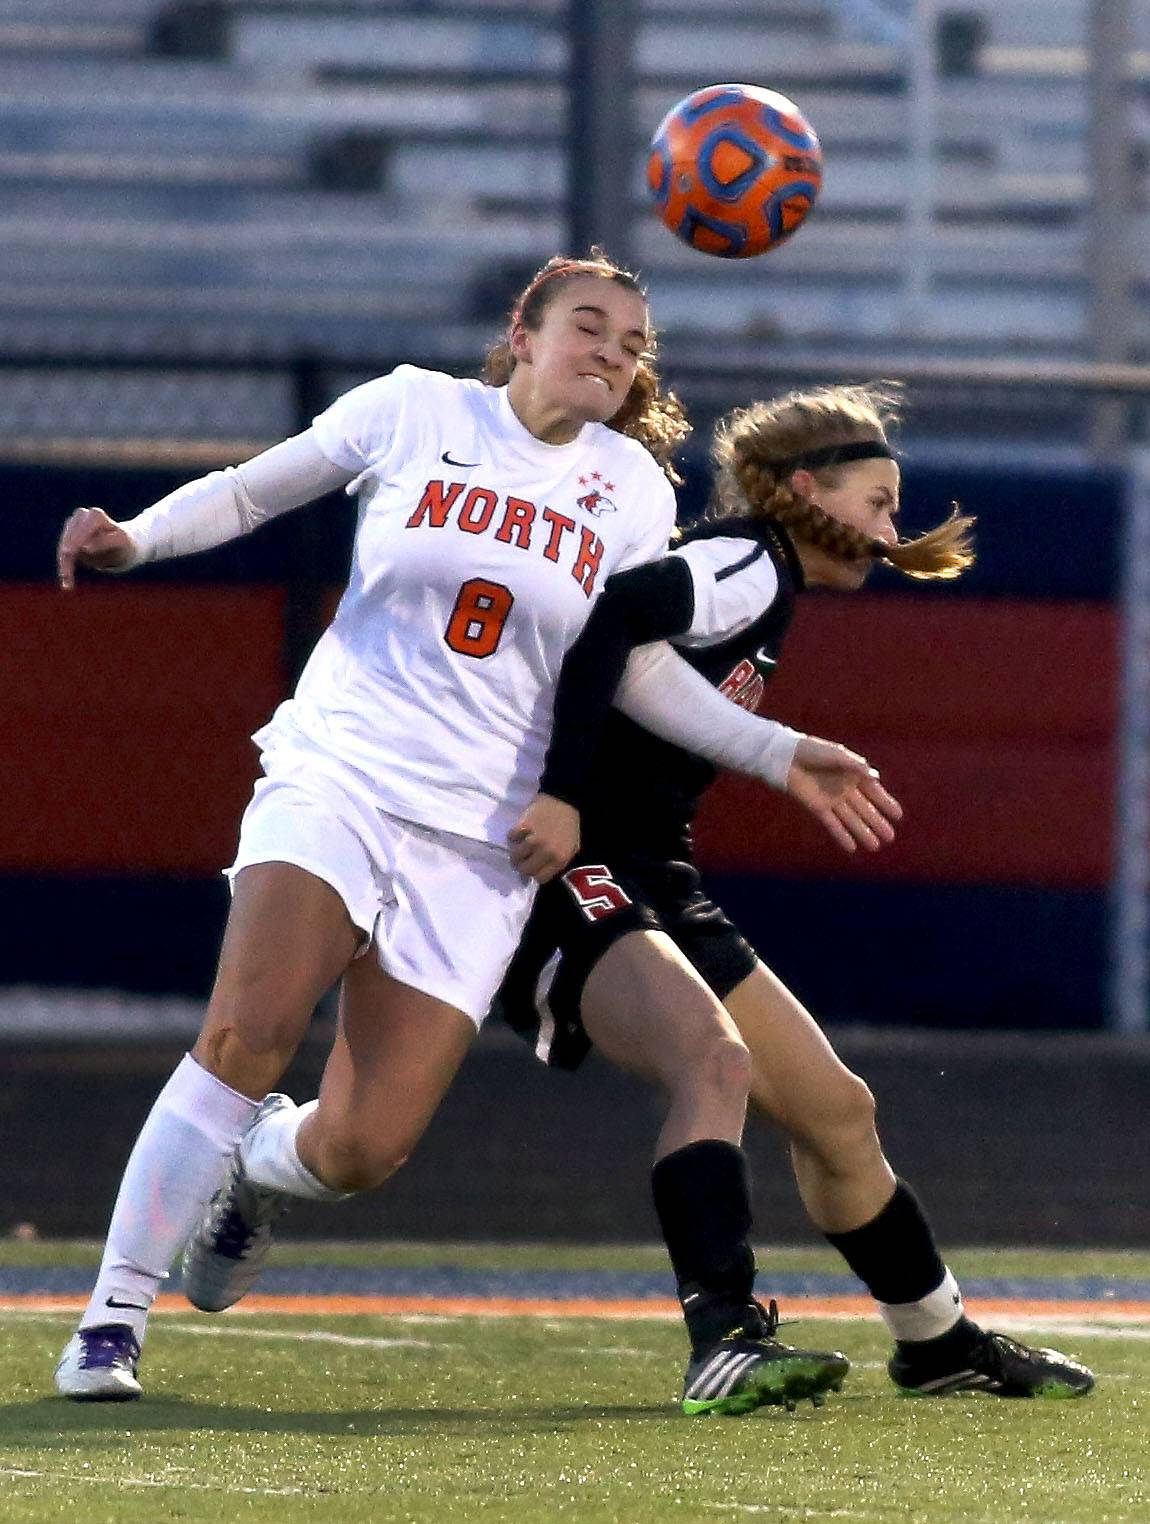 Naperville North's Abbie Boswell, left, heads the ball away from Jackie Batliner of Barrington in girls soccer action on Monday in Naperville.